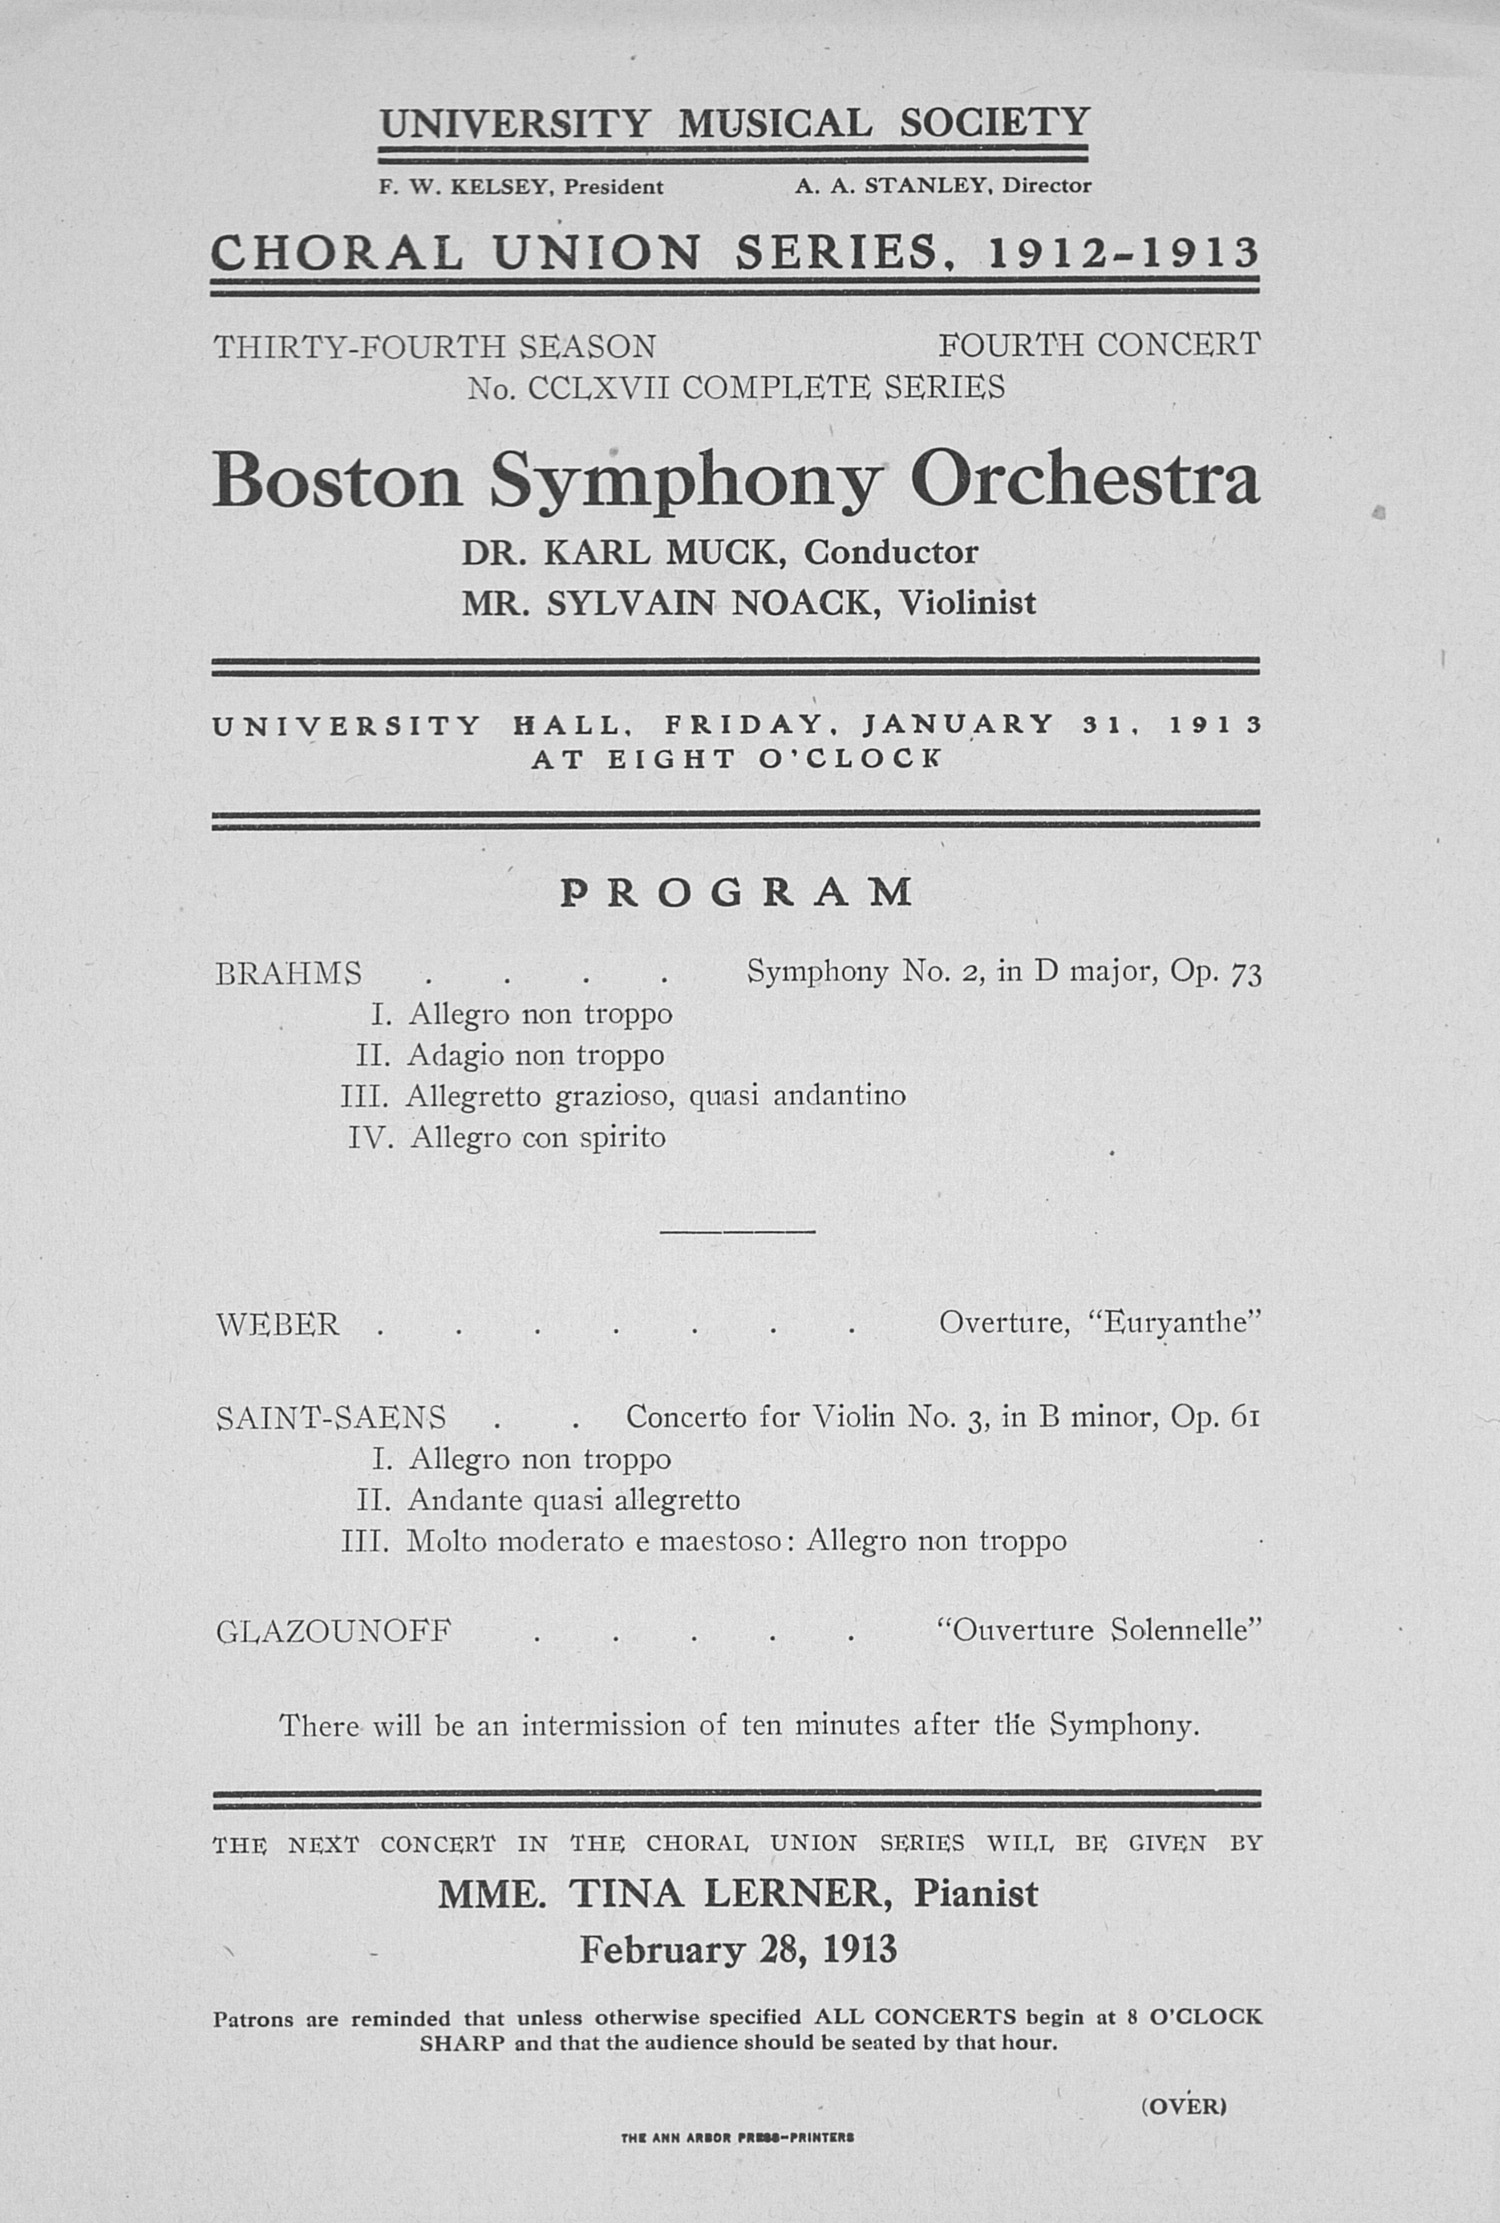 UMS Concert Program, January 31, 1913: Choral Union Series -- Boston Symphony Orchestra image